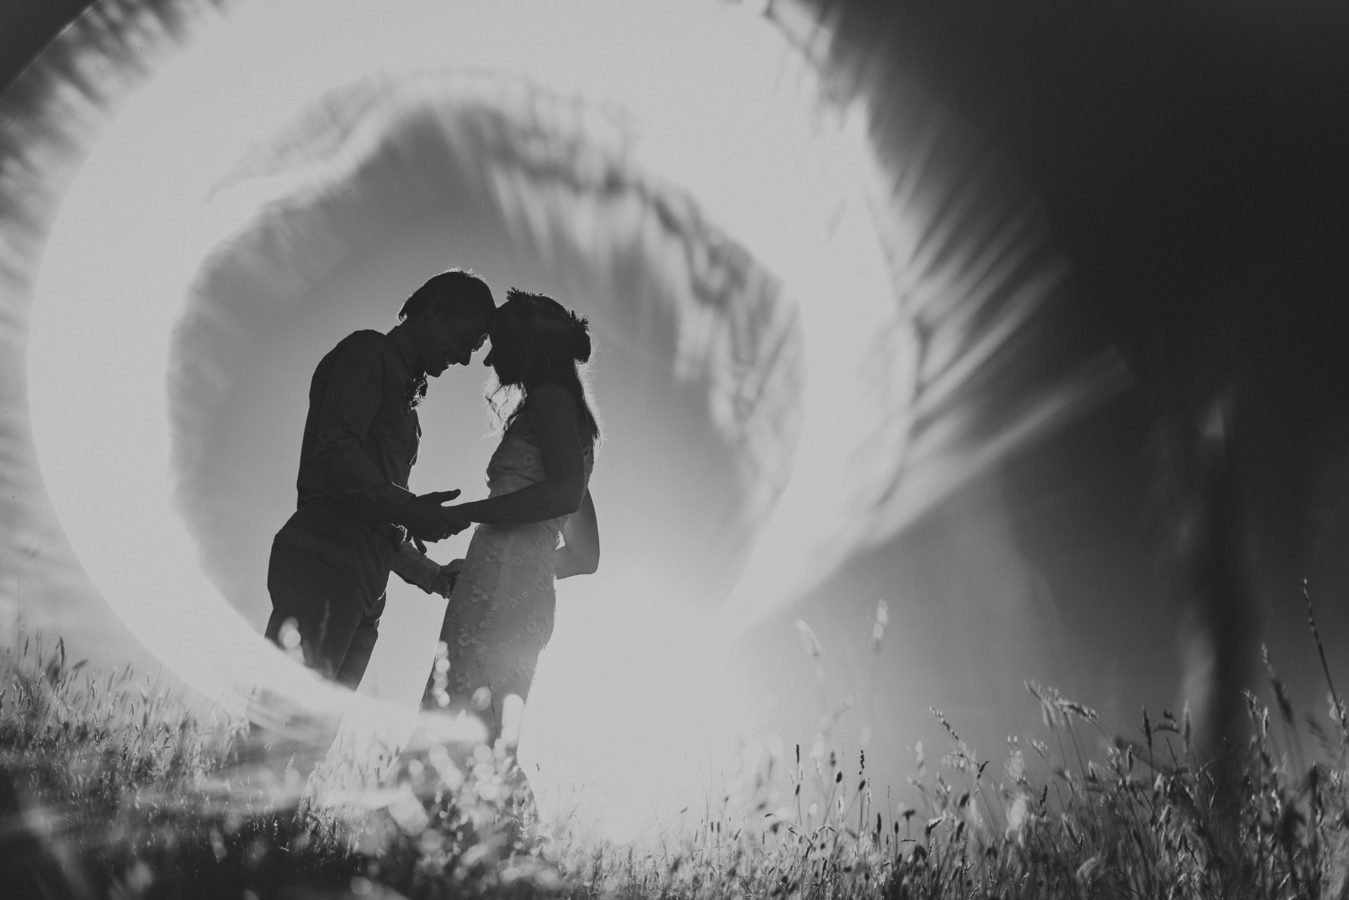 bride and groom holding hands in a grassy field with a ring of light surrounding them